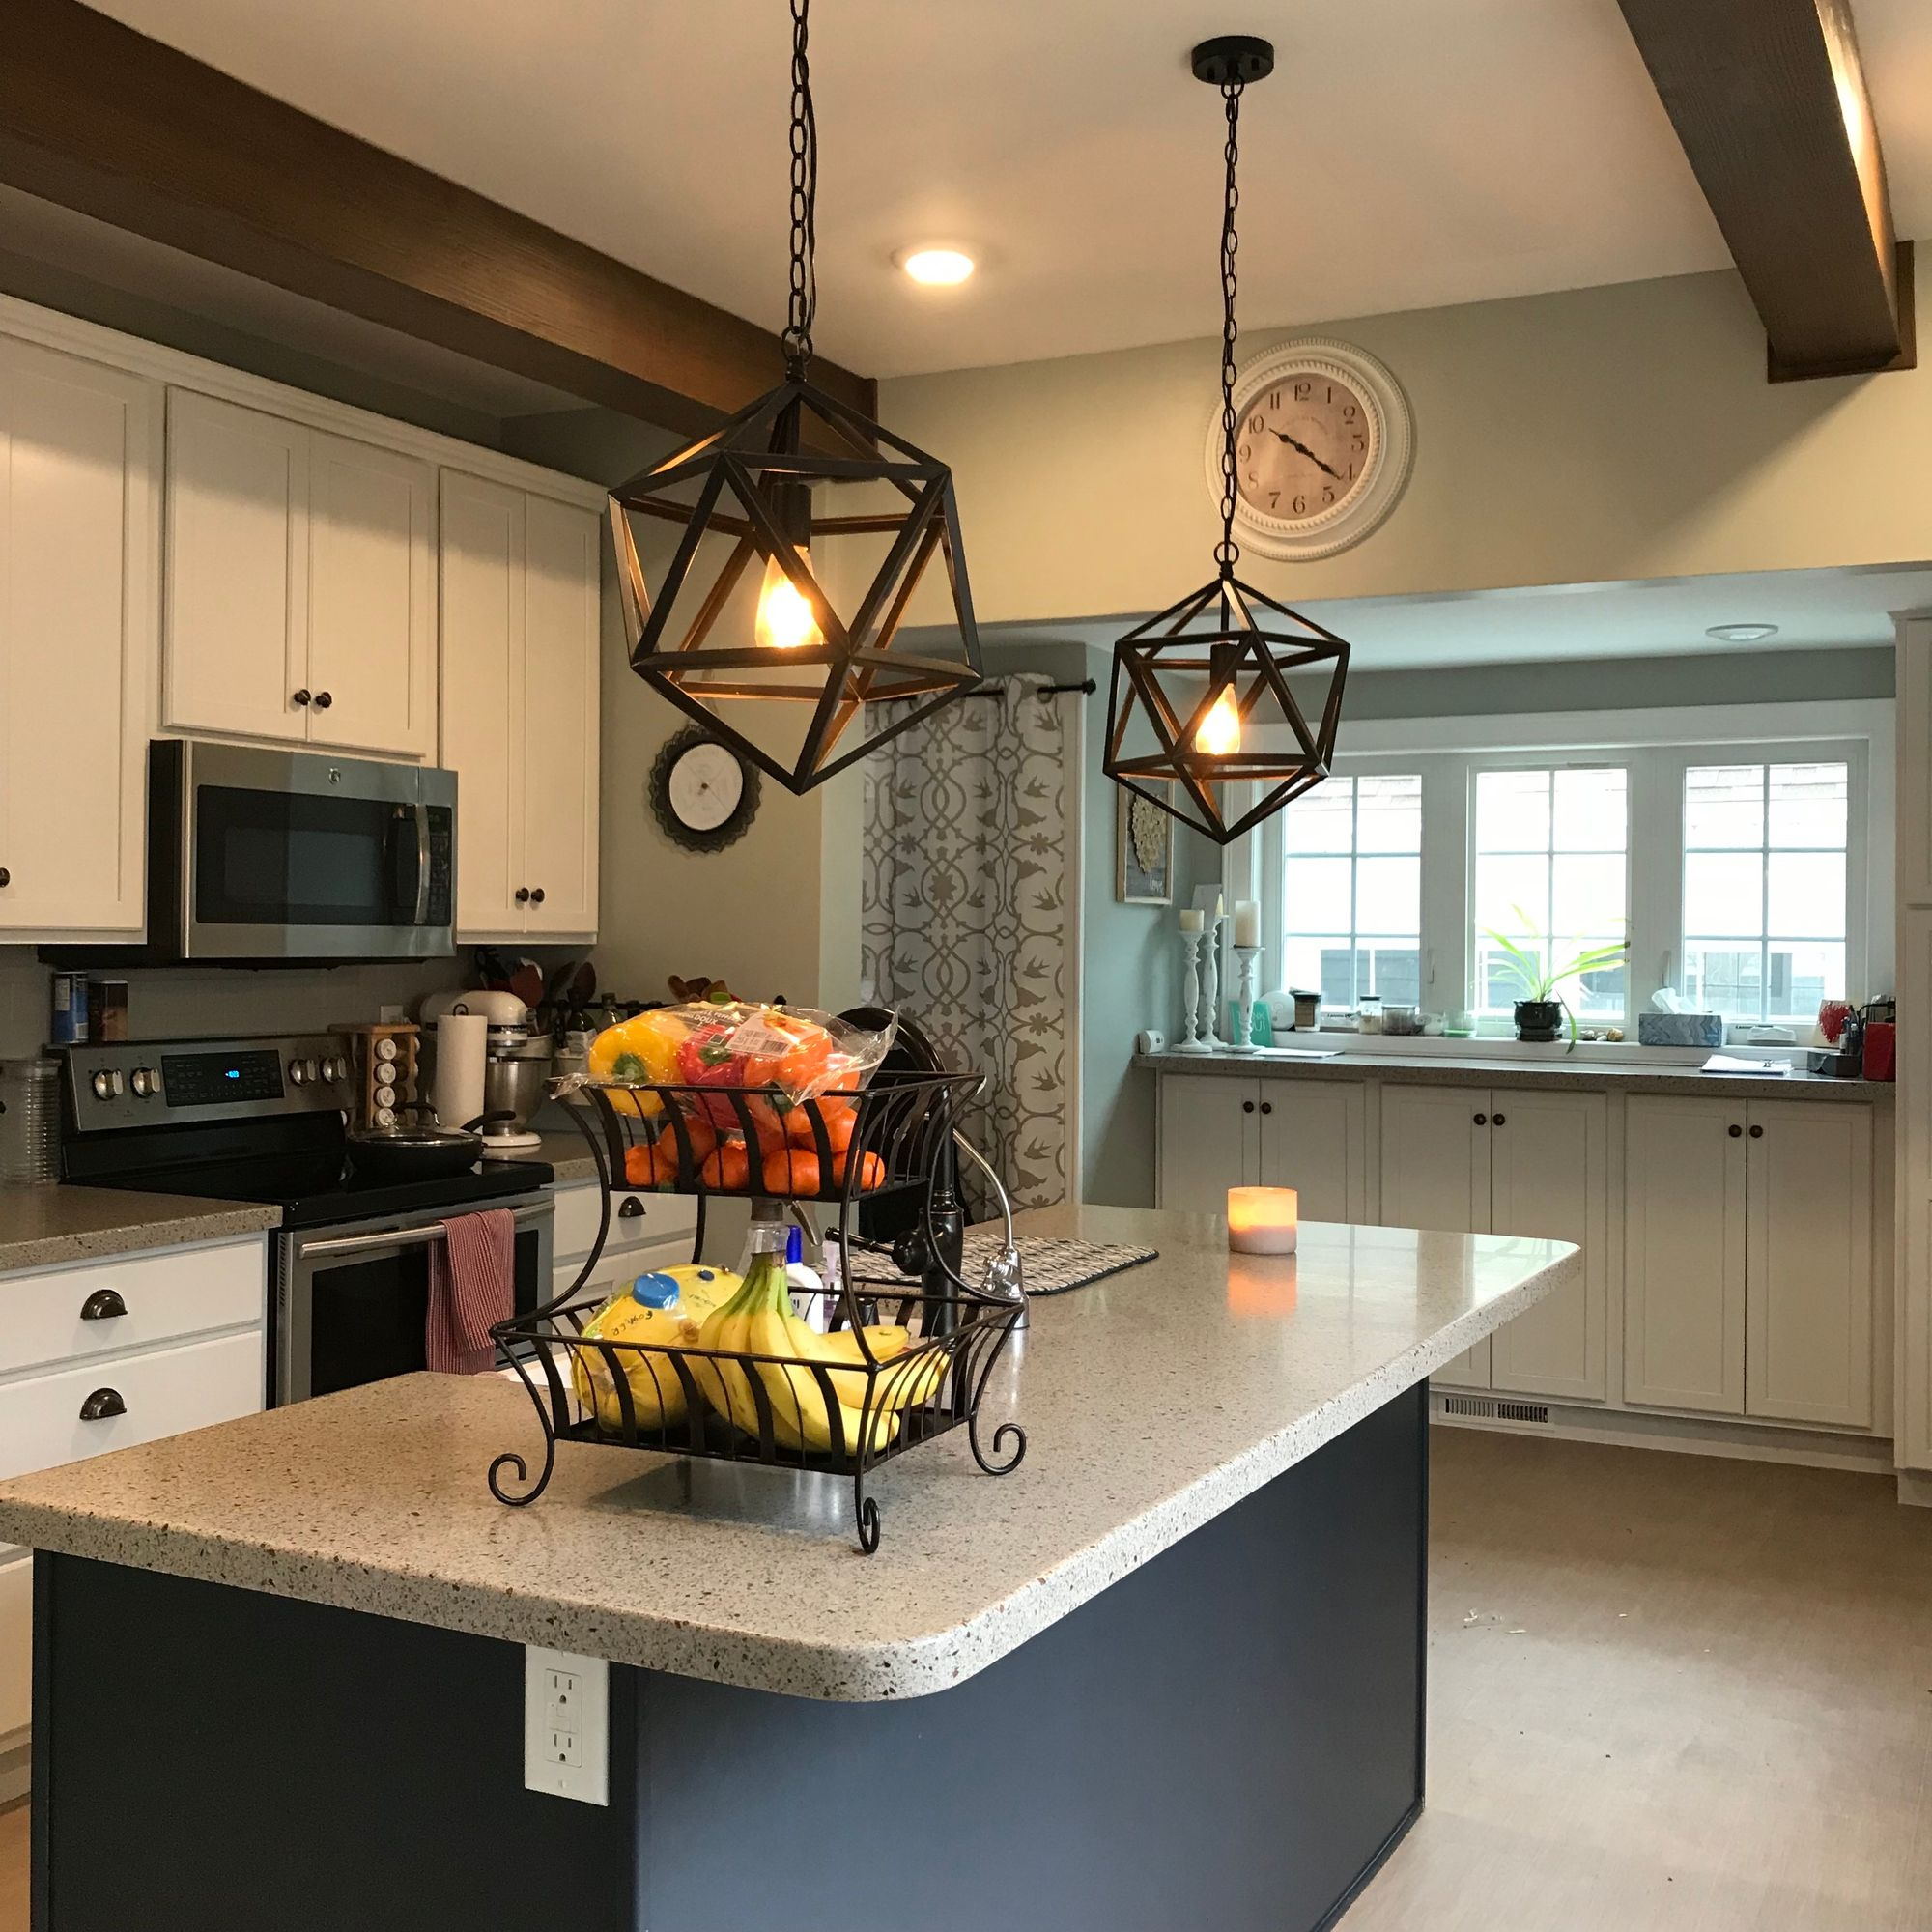 How To Integrate Ceiling Beams Into Your Kitchen – AZ Faux Beams